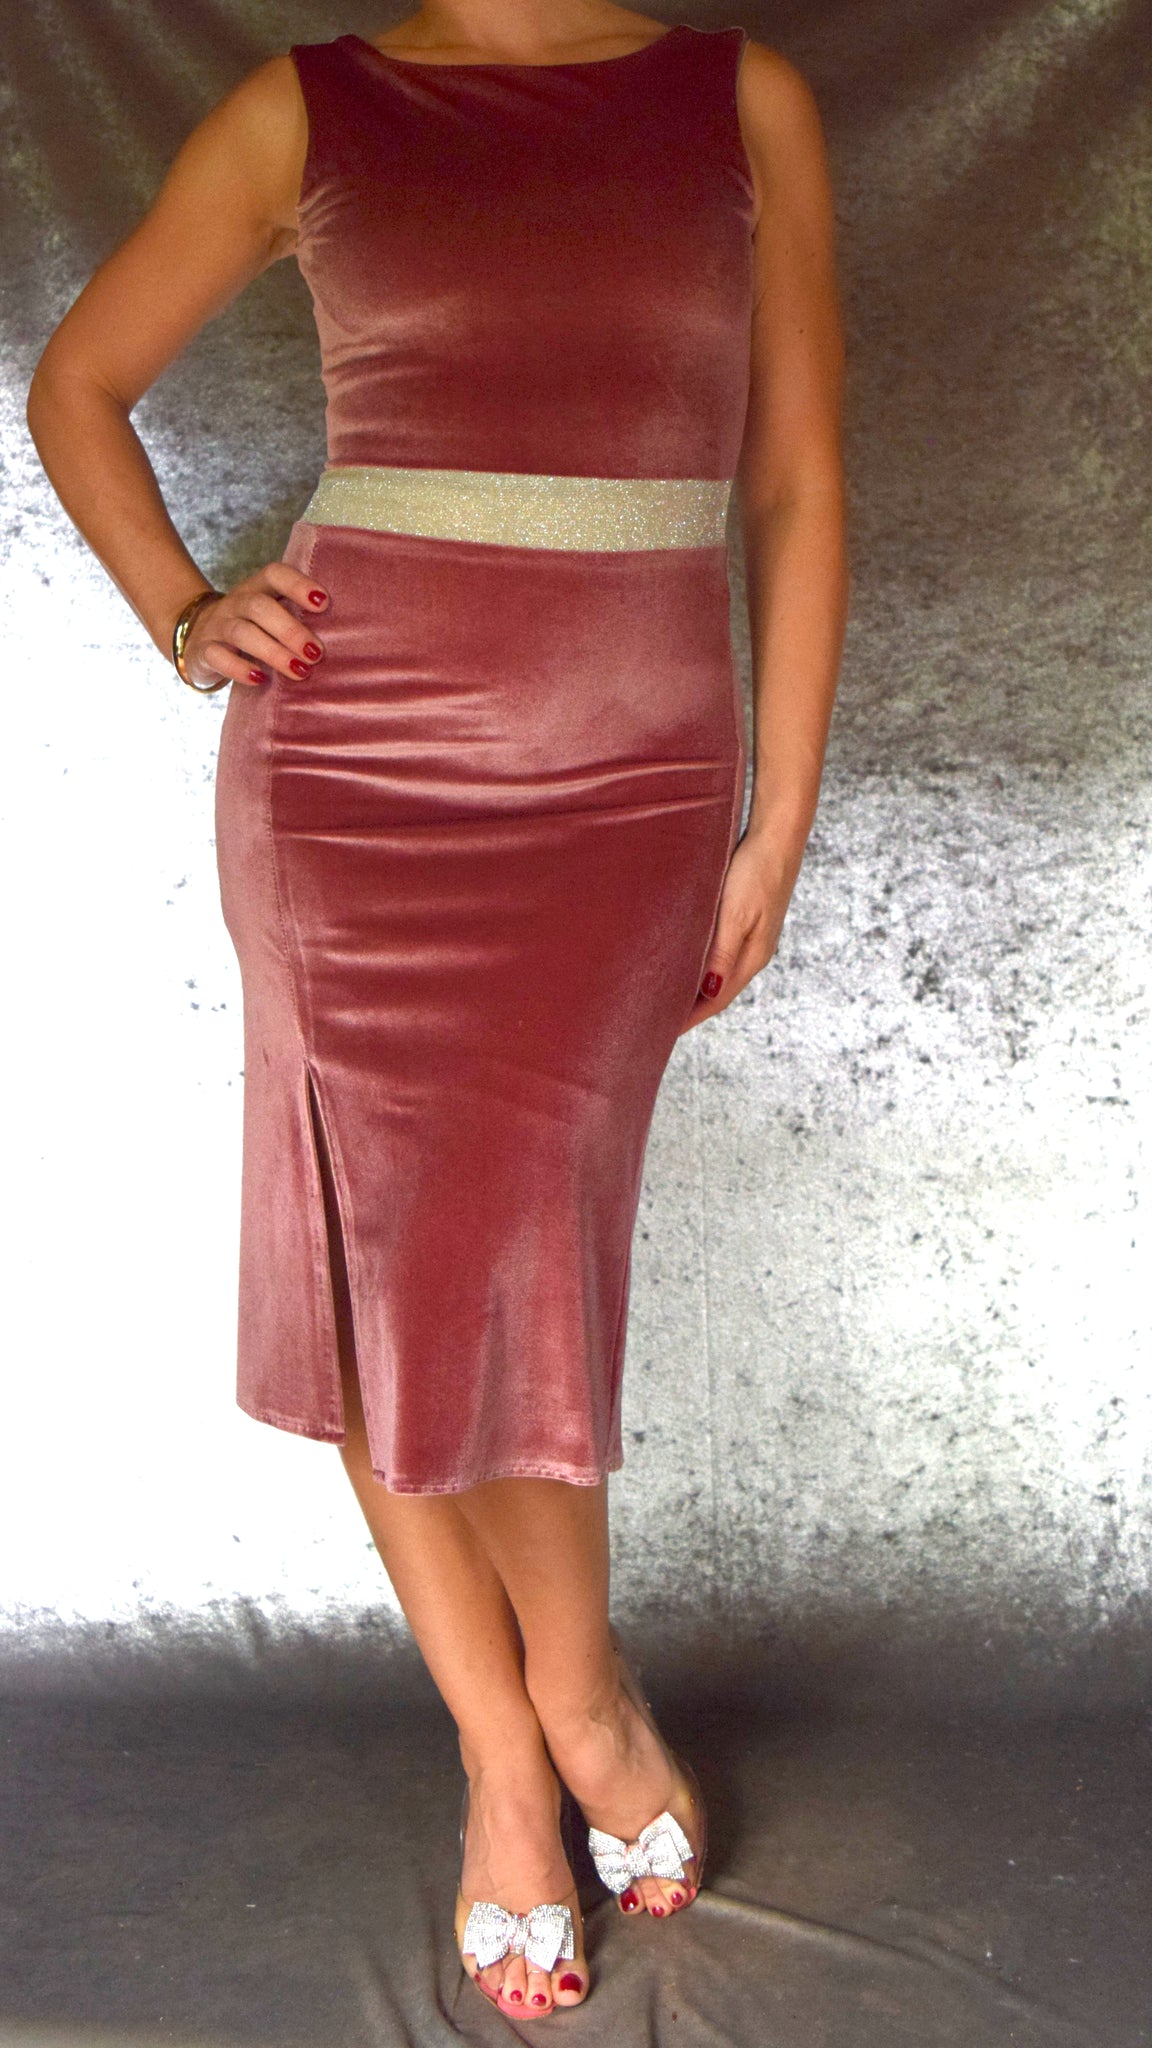 Velvet Dress with Front and Back Slits and Glitter Waistband (Shown in Dusty Rose) - Choose Your Size and Color